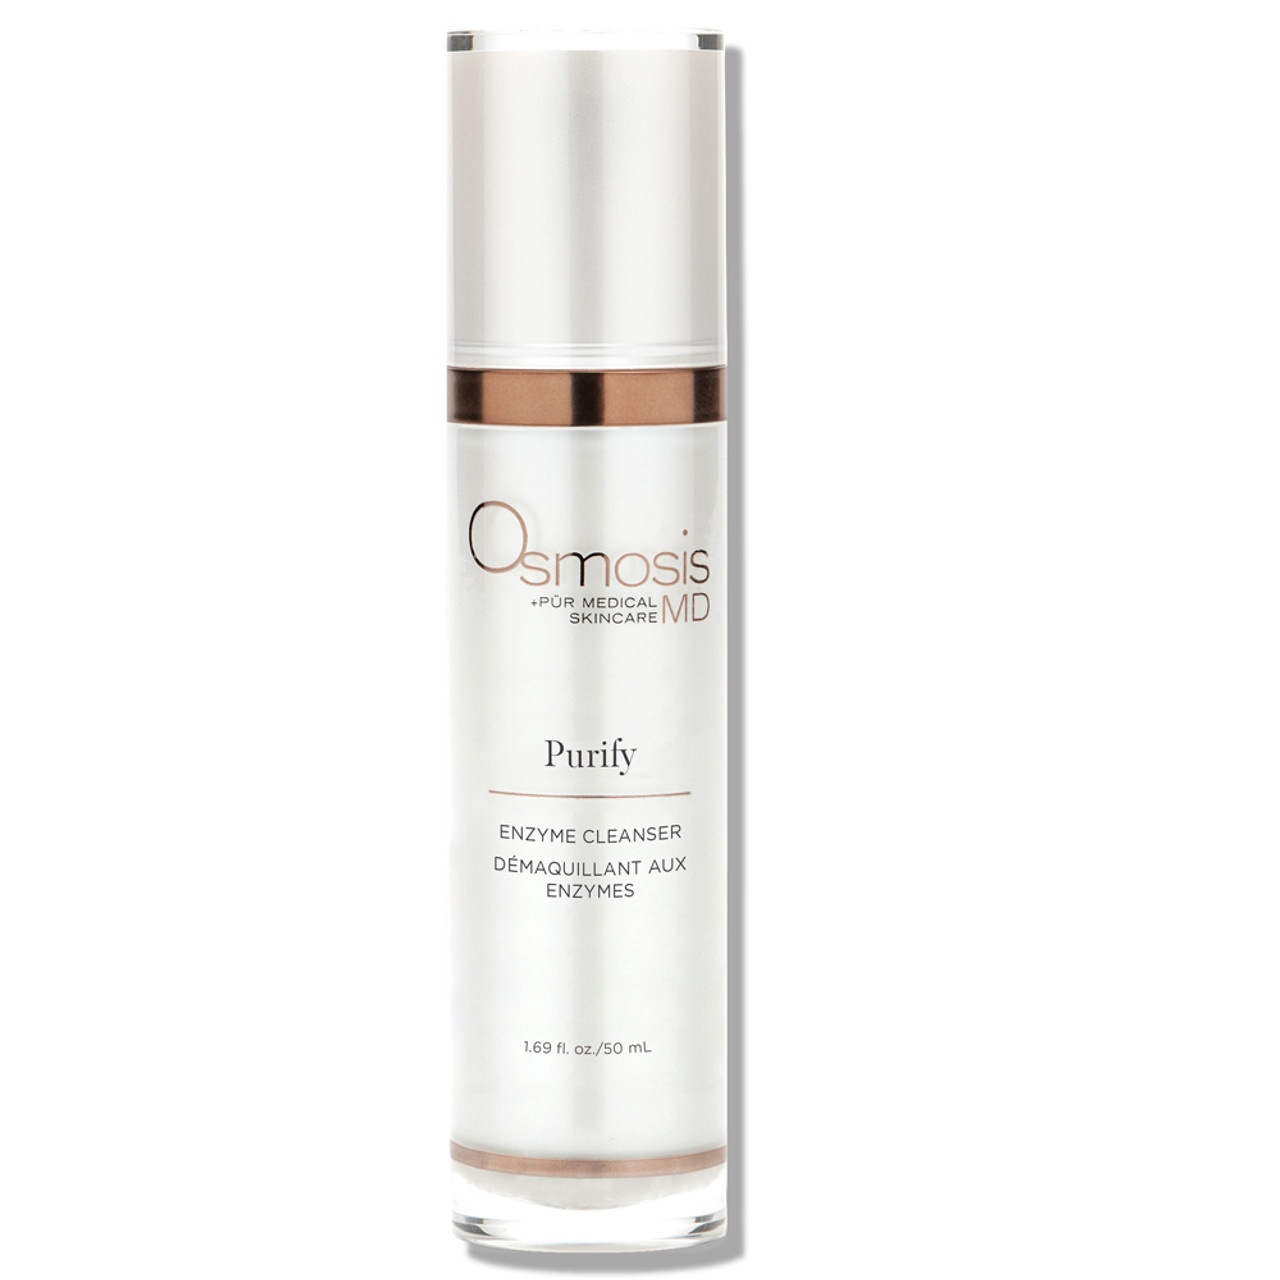 Osmosis +Skincare MD Purify - Enzyme Cleanser BeautifiedYou.com